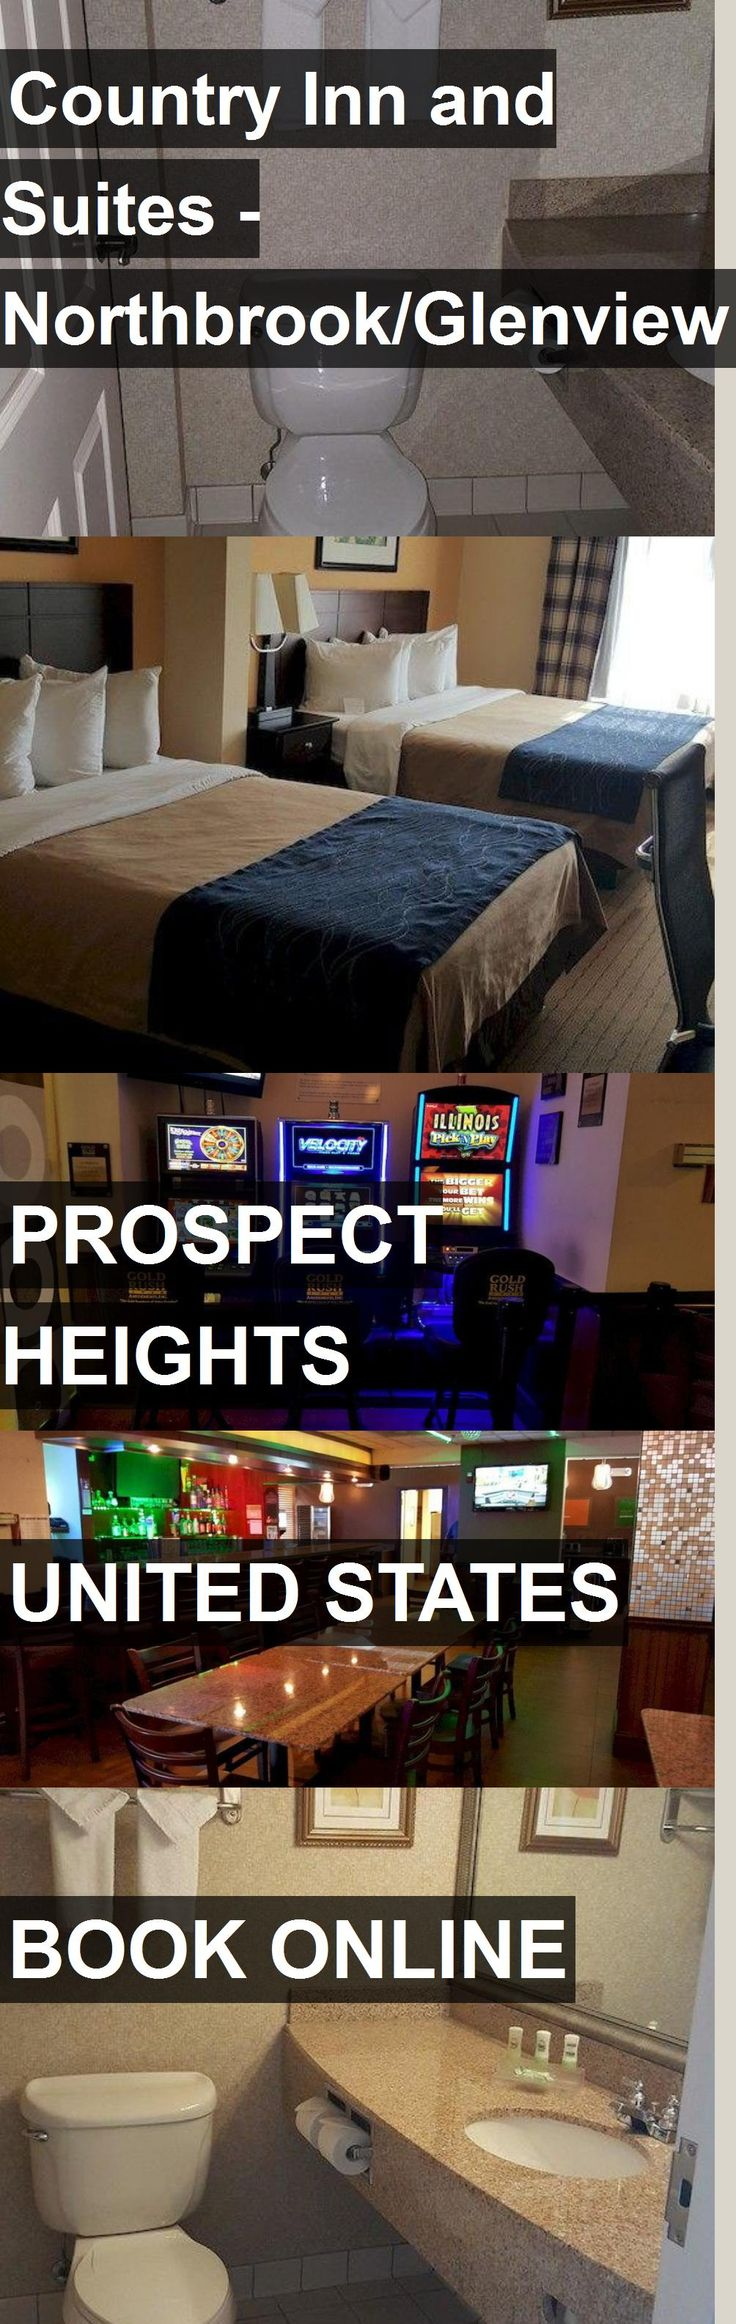 Hotel Country Inn and Suites - Northbrook/Glenview in Prospect Heights, United States. For more information, photos, reviews and best prices please follow the link. #UnitedStates #ProspectHeights #travel #vacation #hotel